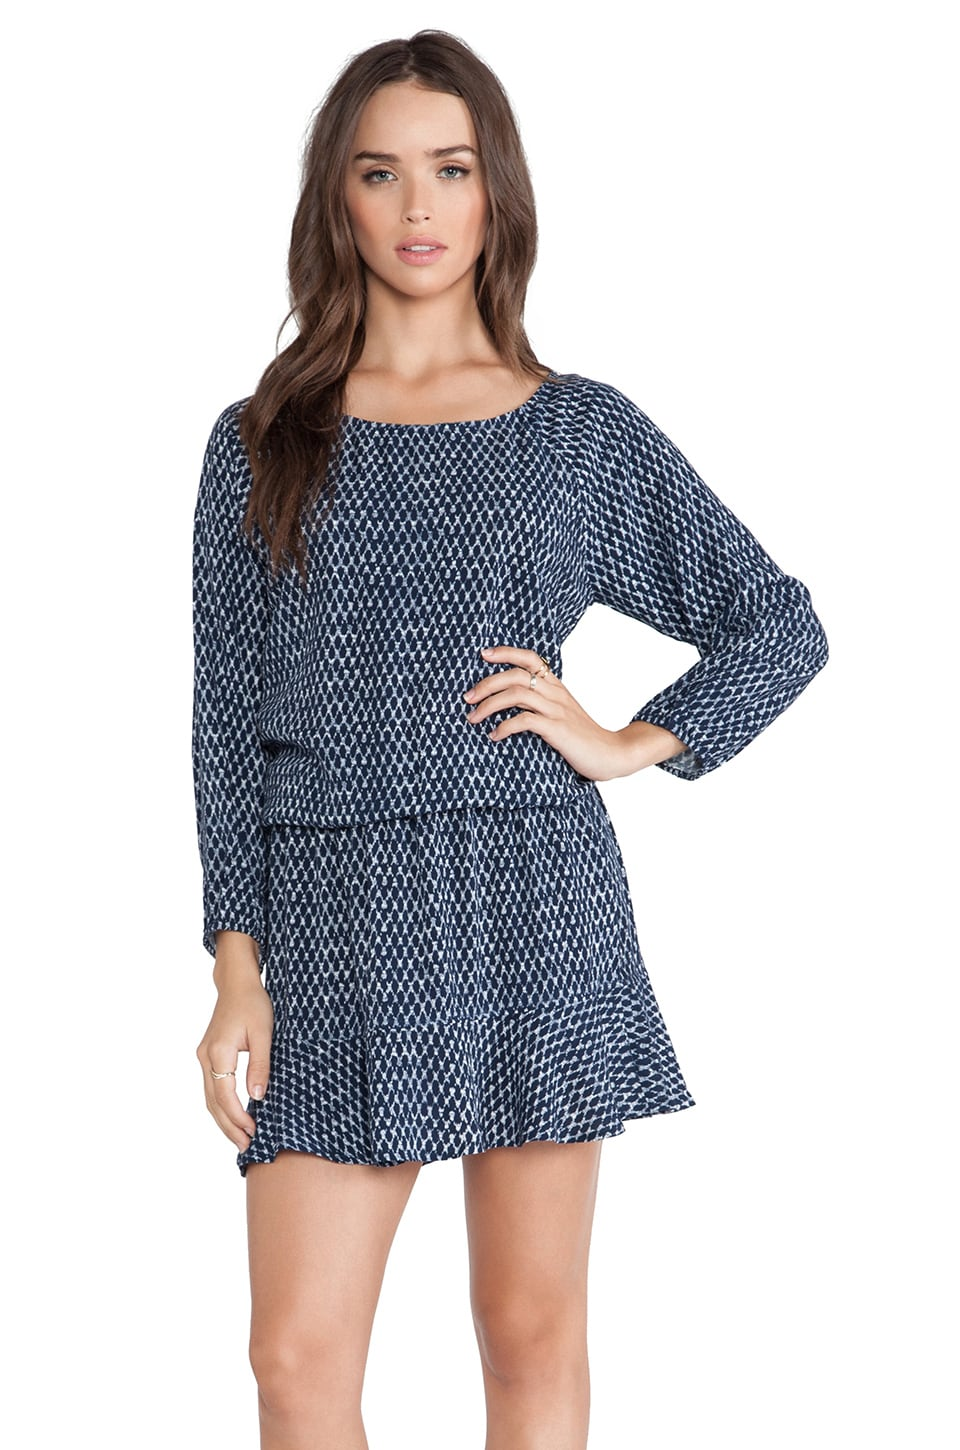 Soft Joie Arryn Dress in Deep Indigo